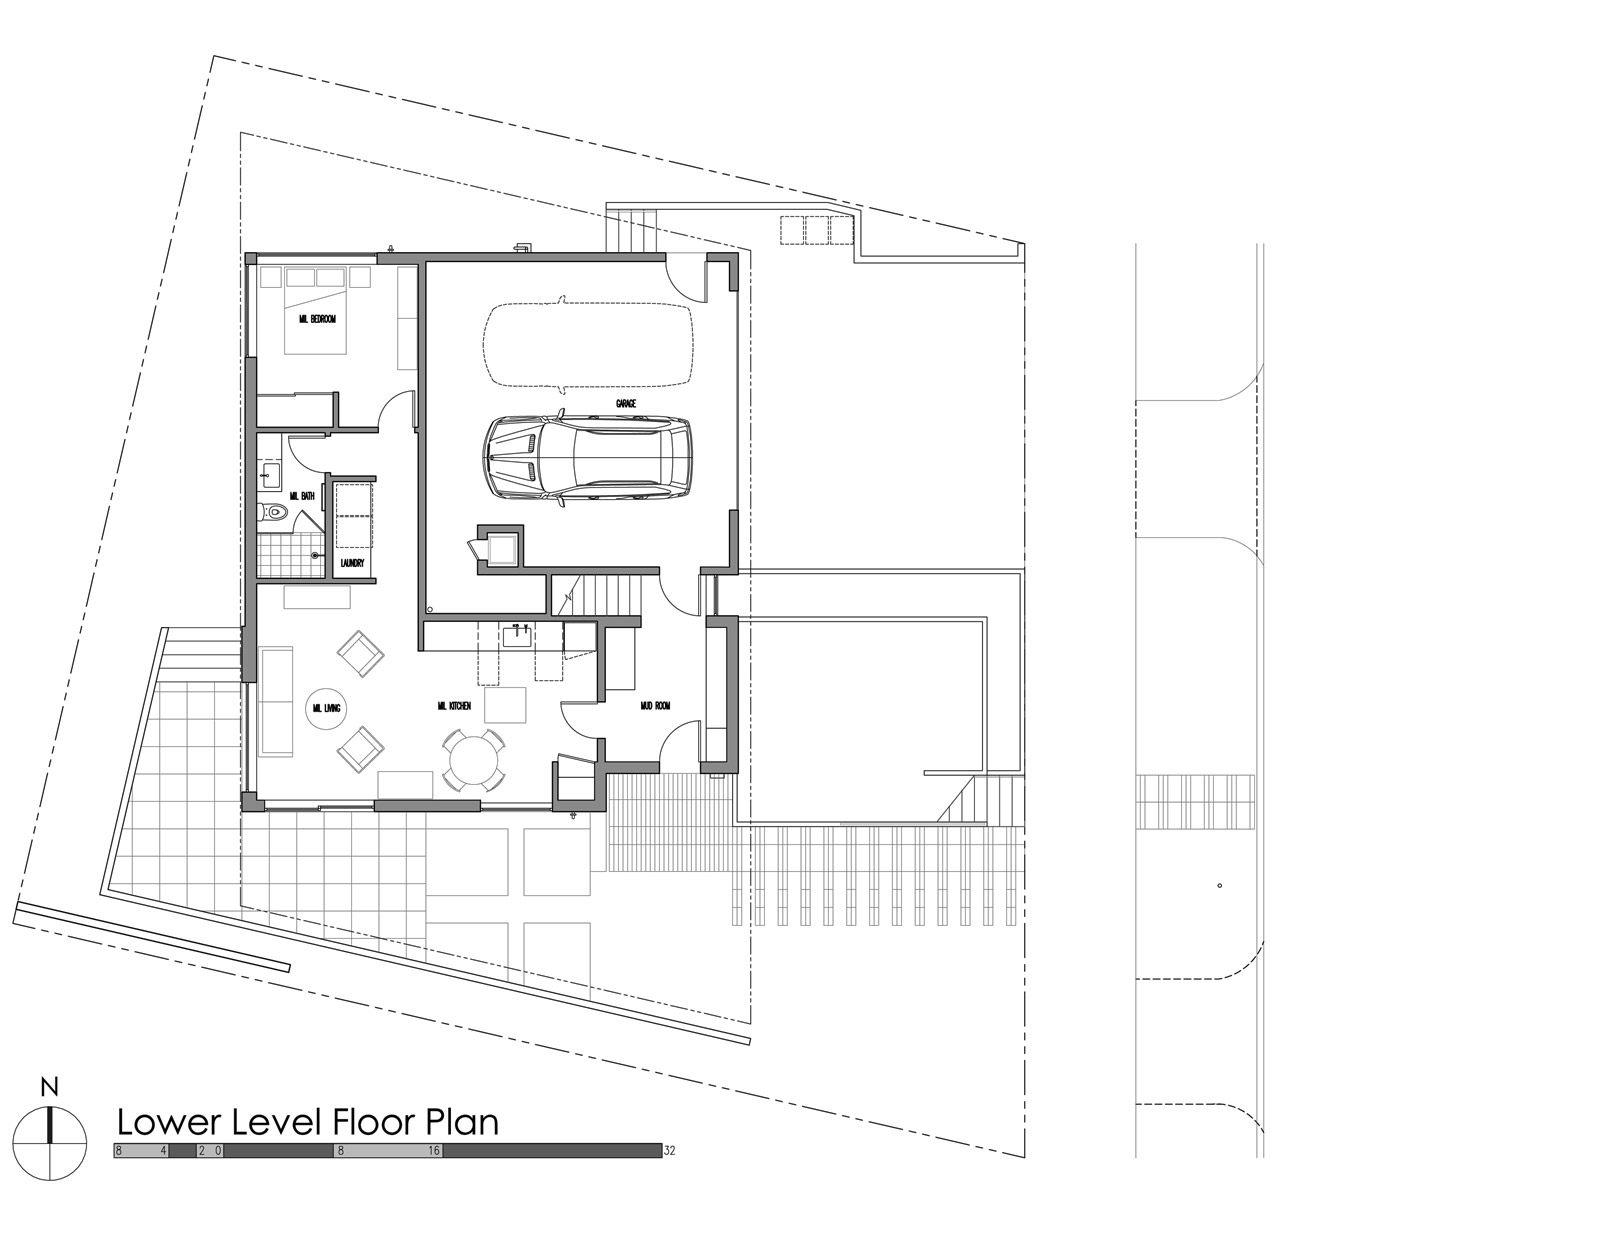 case study house plans See scientific diagram: floor plan and front elevation of the case study house from publication: building service life and its effect on the life cycle embodied energy of buildings on researchgate, the professional network for scientists.